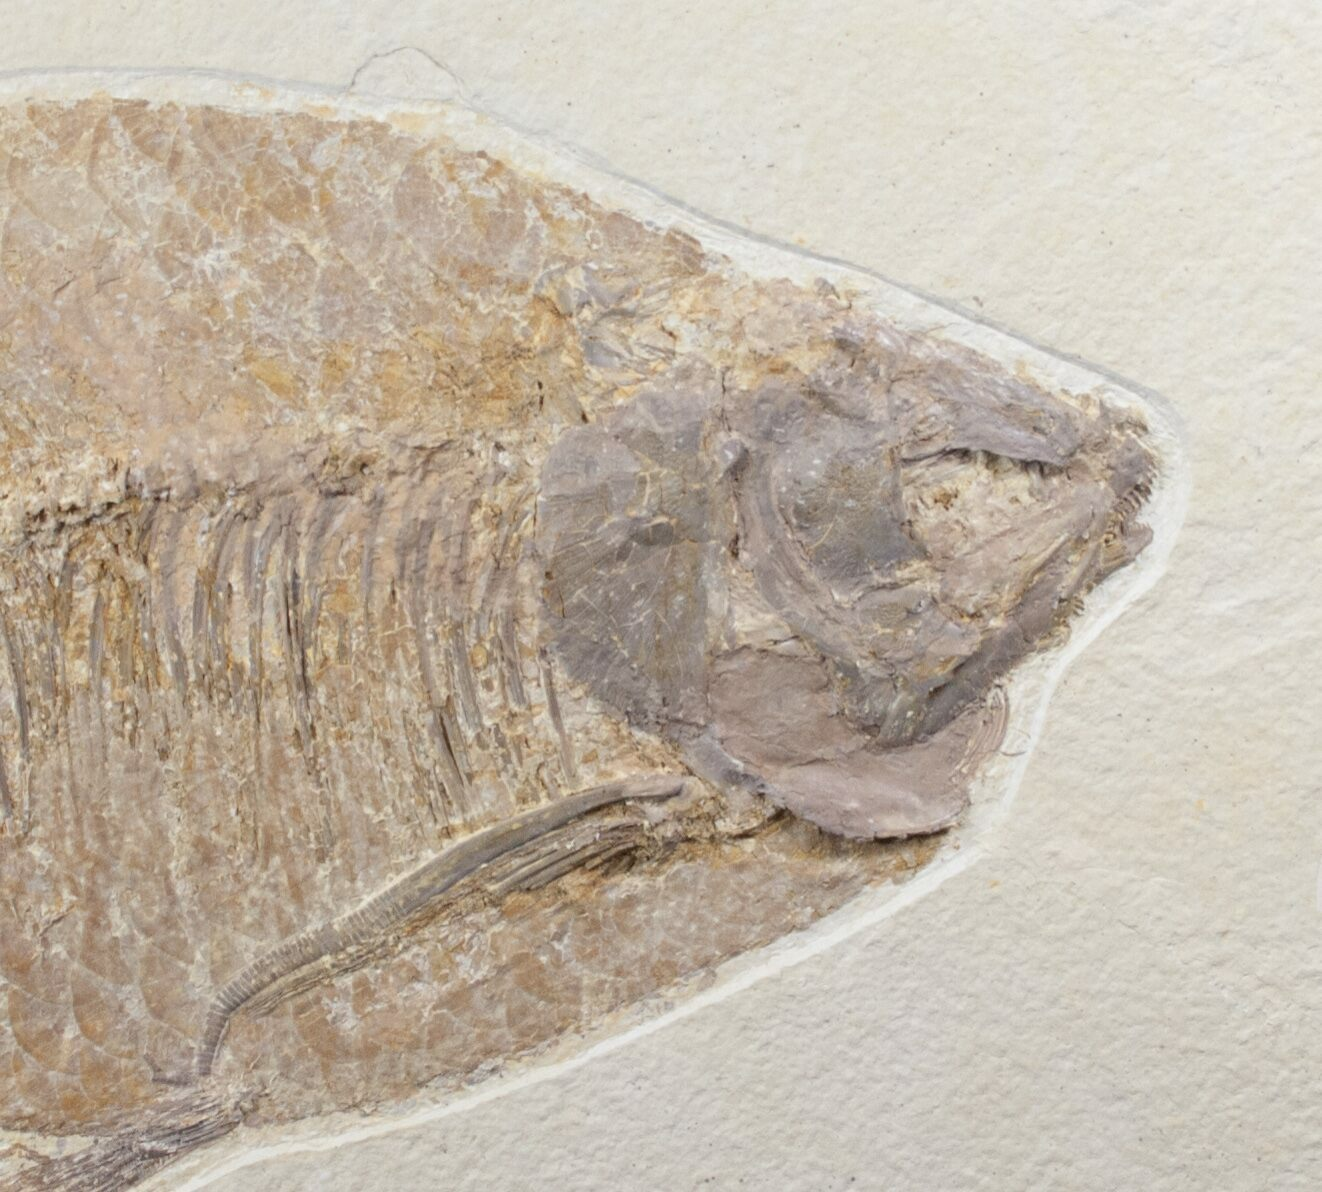 Superb 12 5 phareodus fish fossil wyoming for sale for Fish fossils for sale